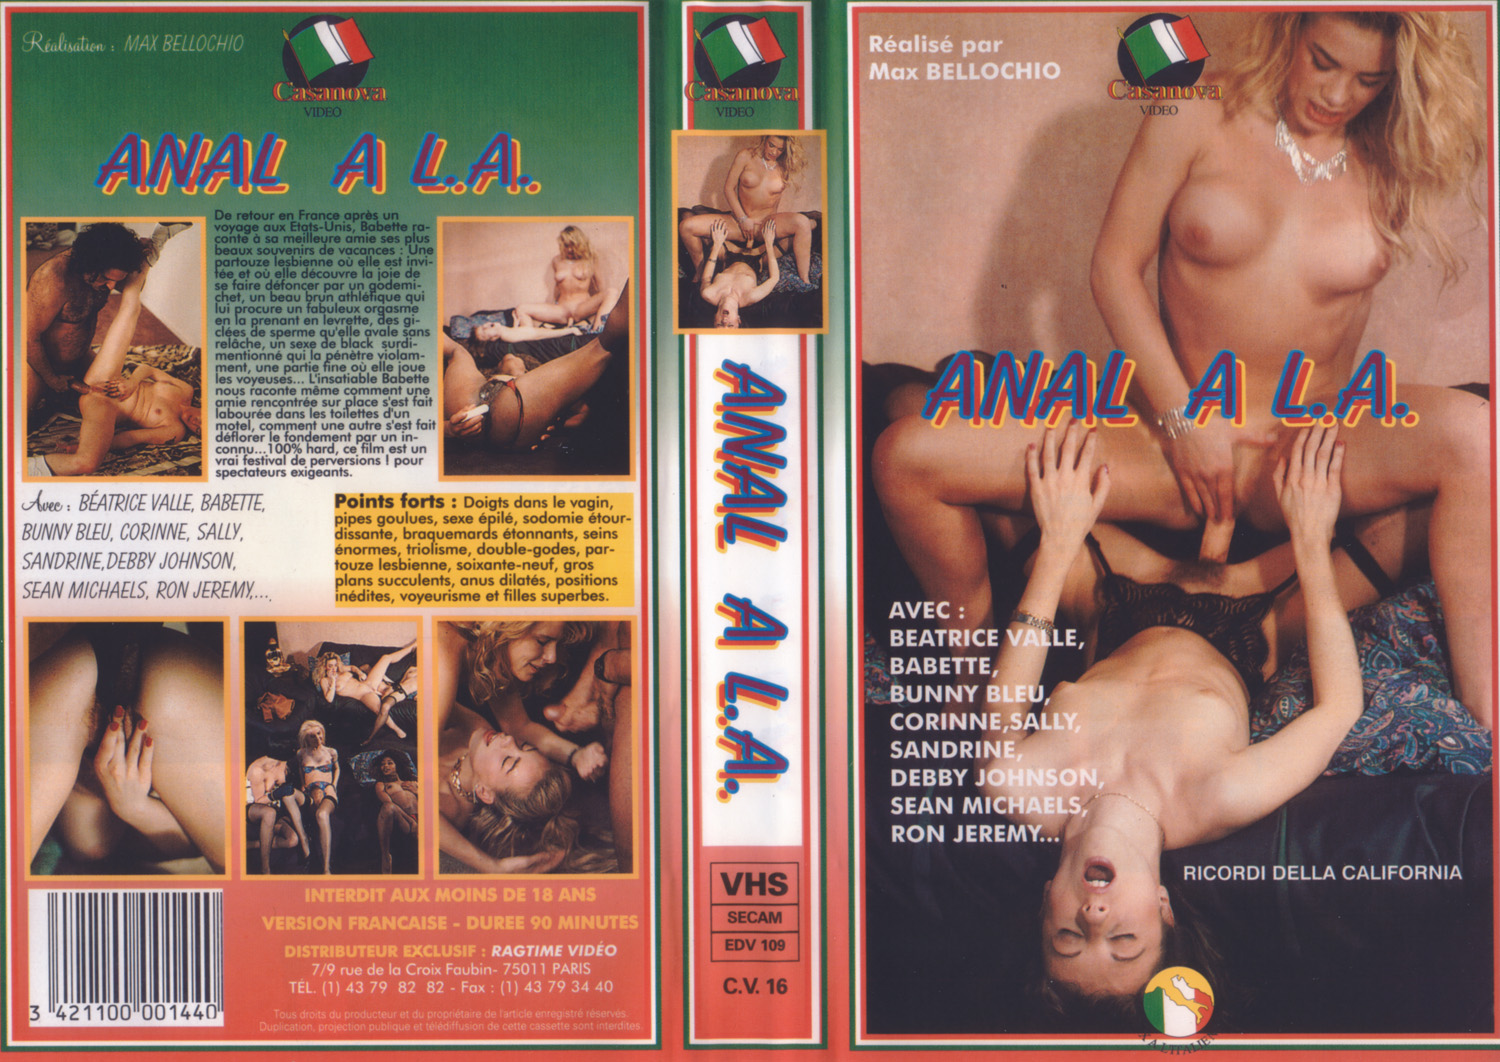 italyanskie-porno-filmi-retro-video